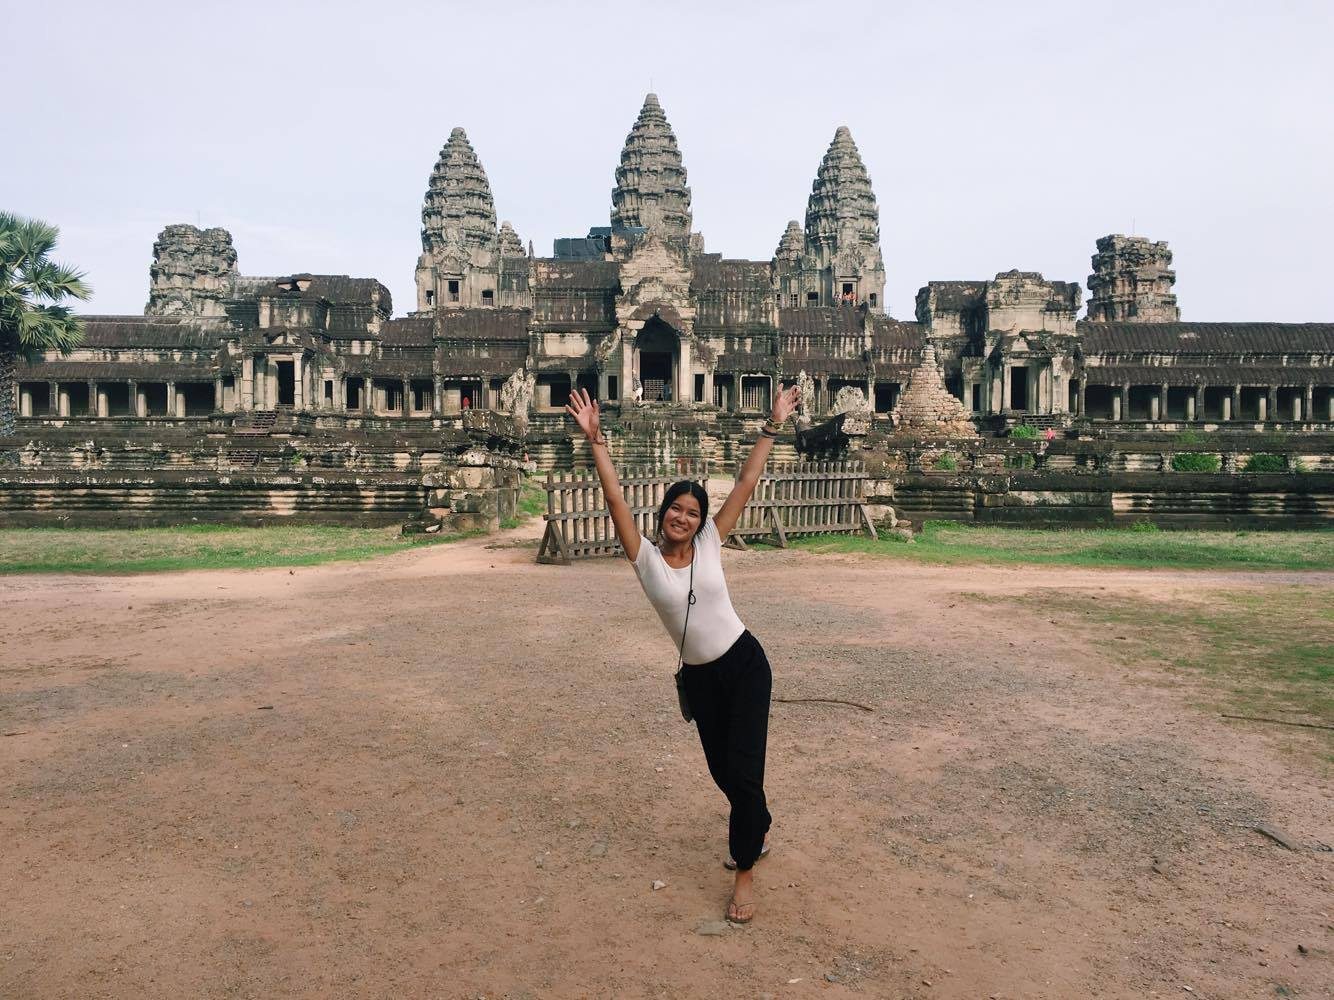 This is me solo backpacking in Cambodia in 2016. I found a secret less-crowded spot on the back of of Angkor Wat, which is the largest religious monument in the world.